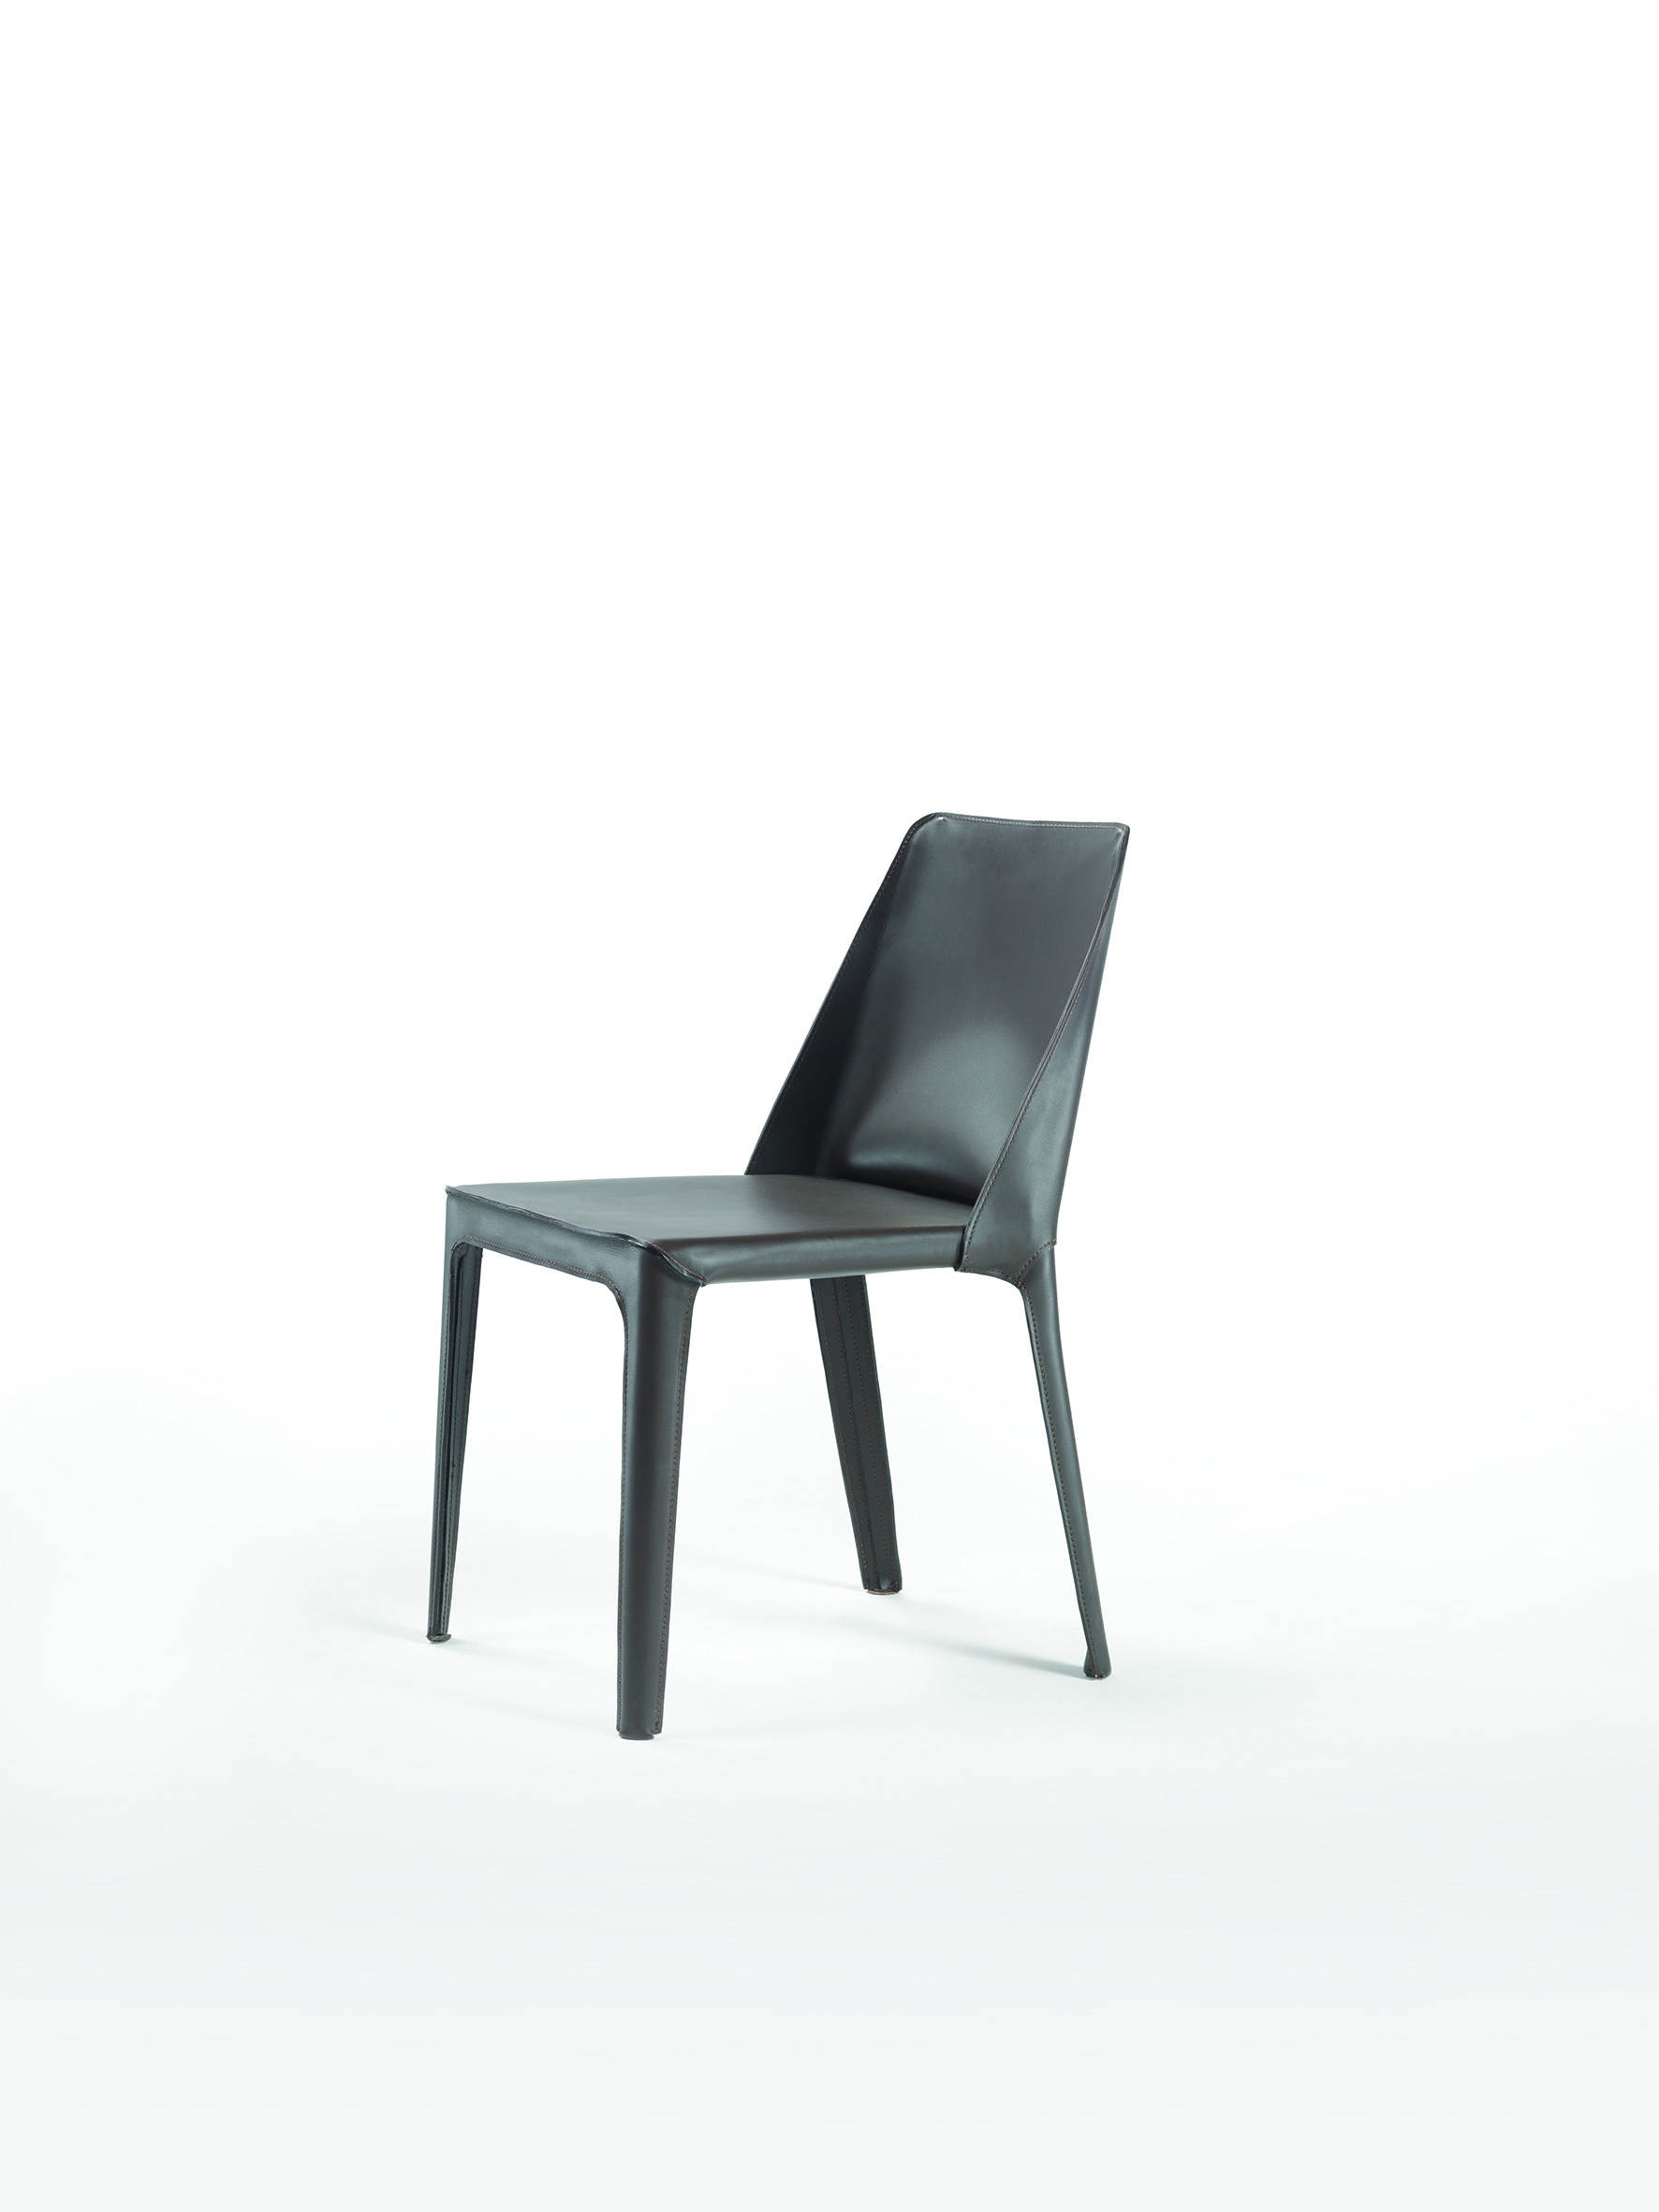 ISABEL – CHAIR